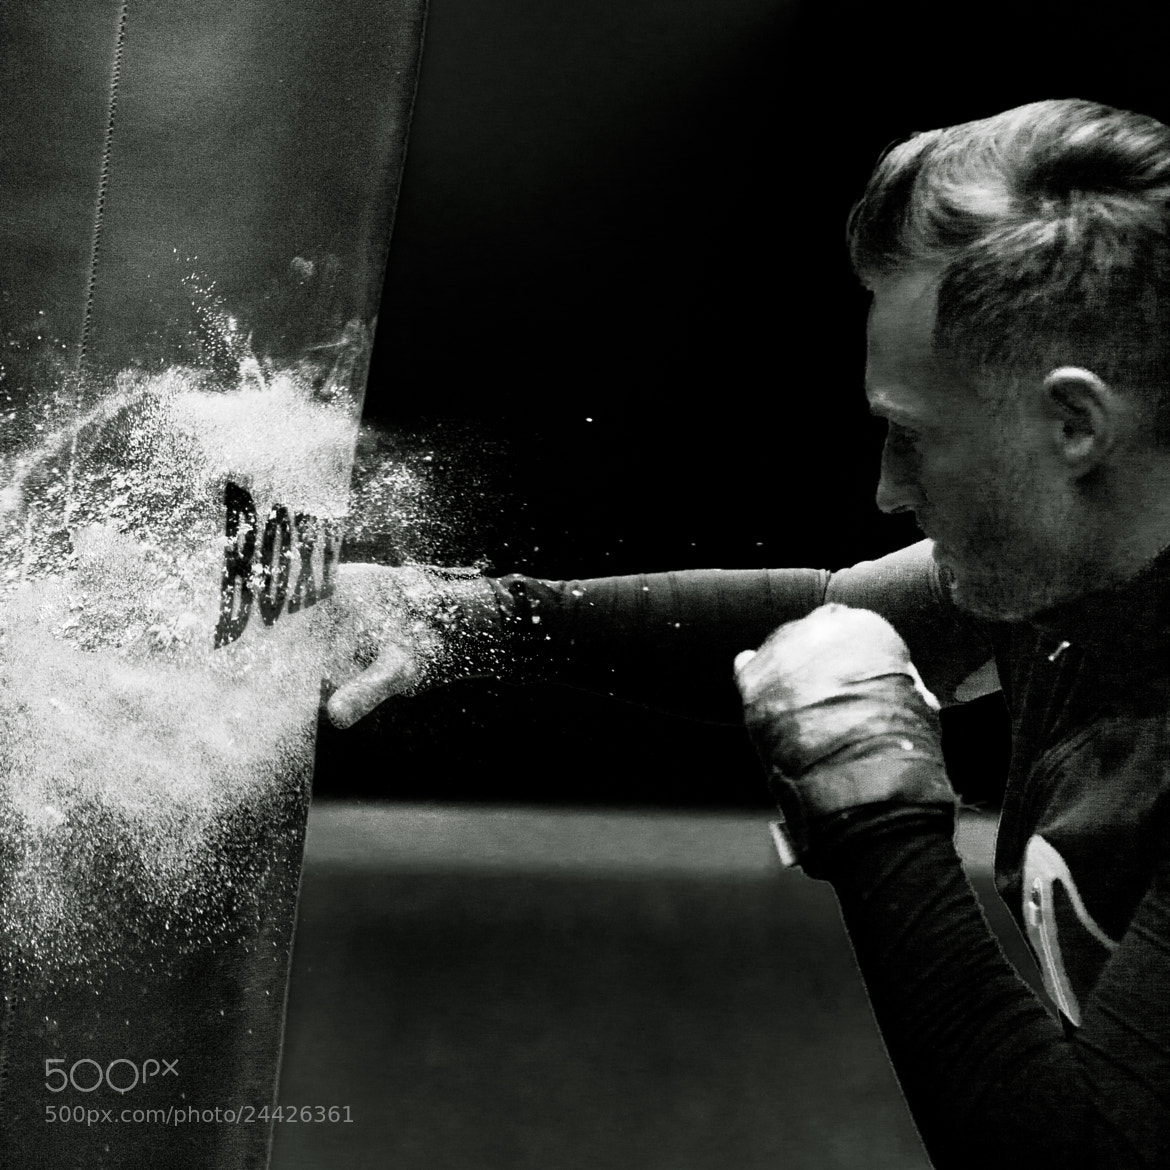 Photograph Punch by Photocillin Photography on 500px